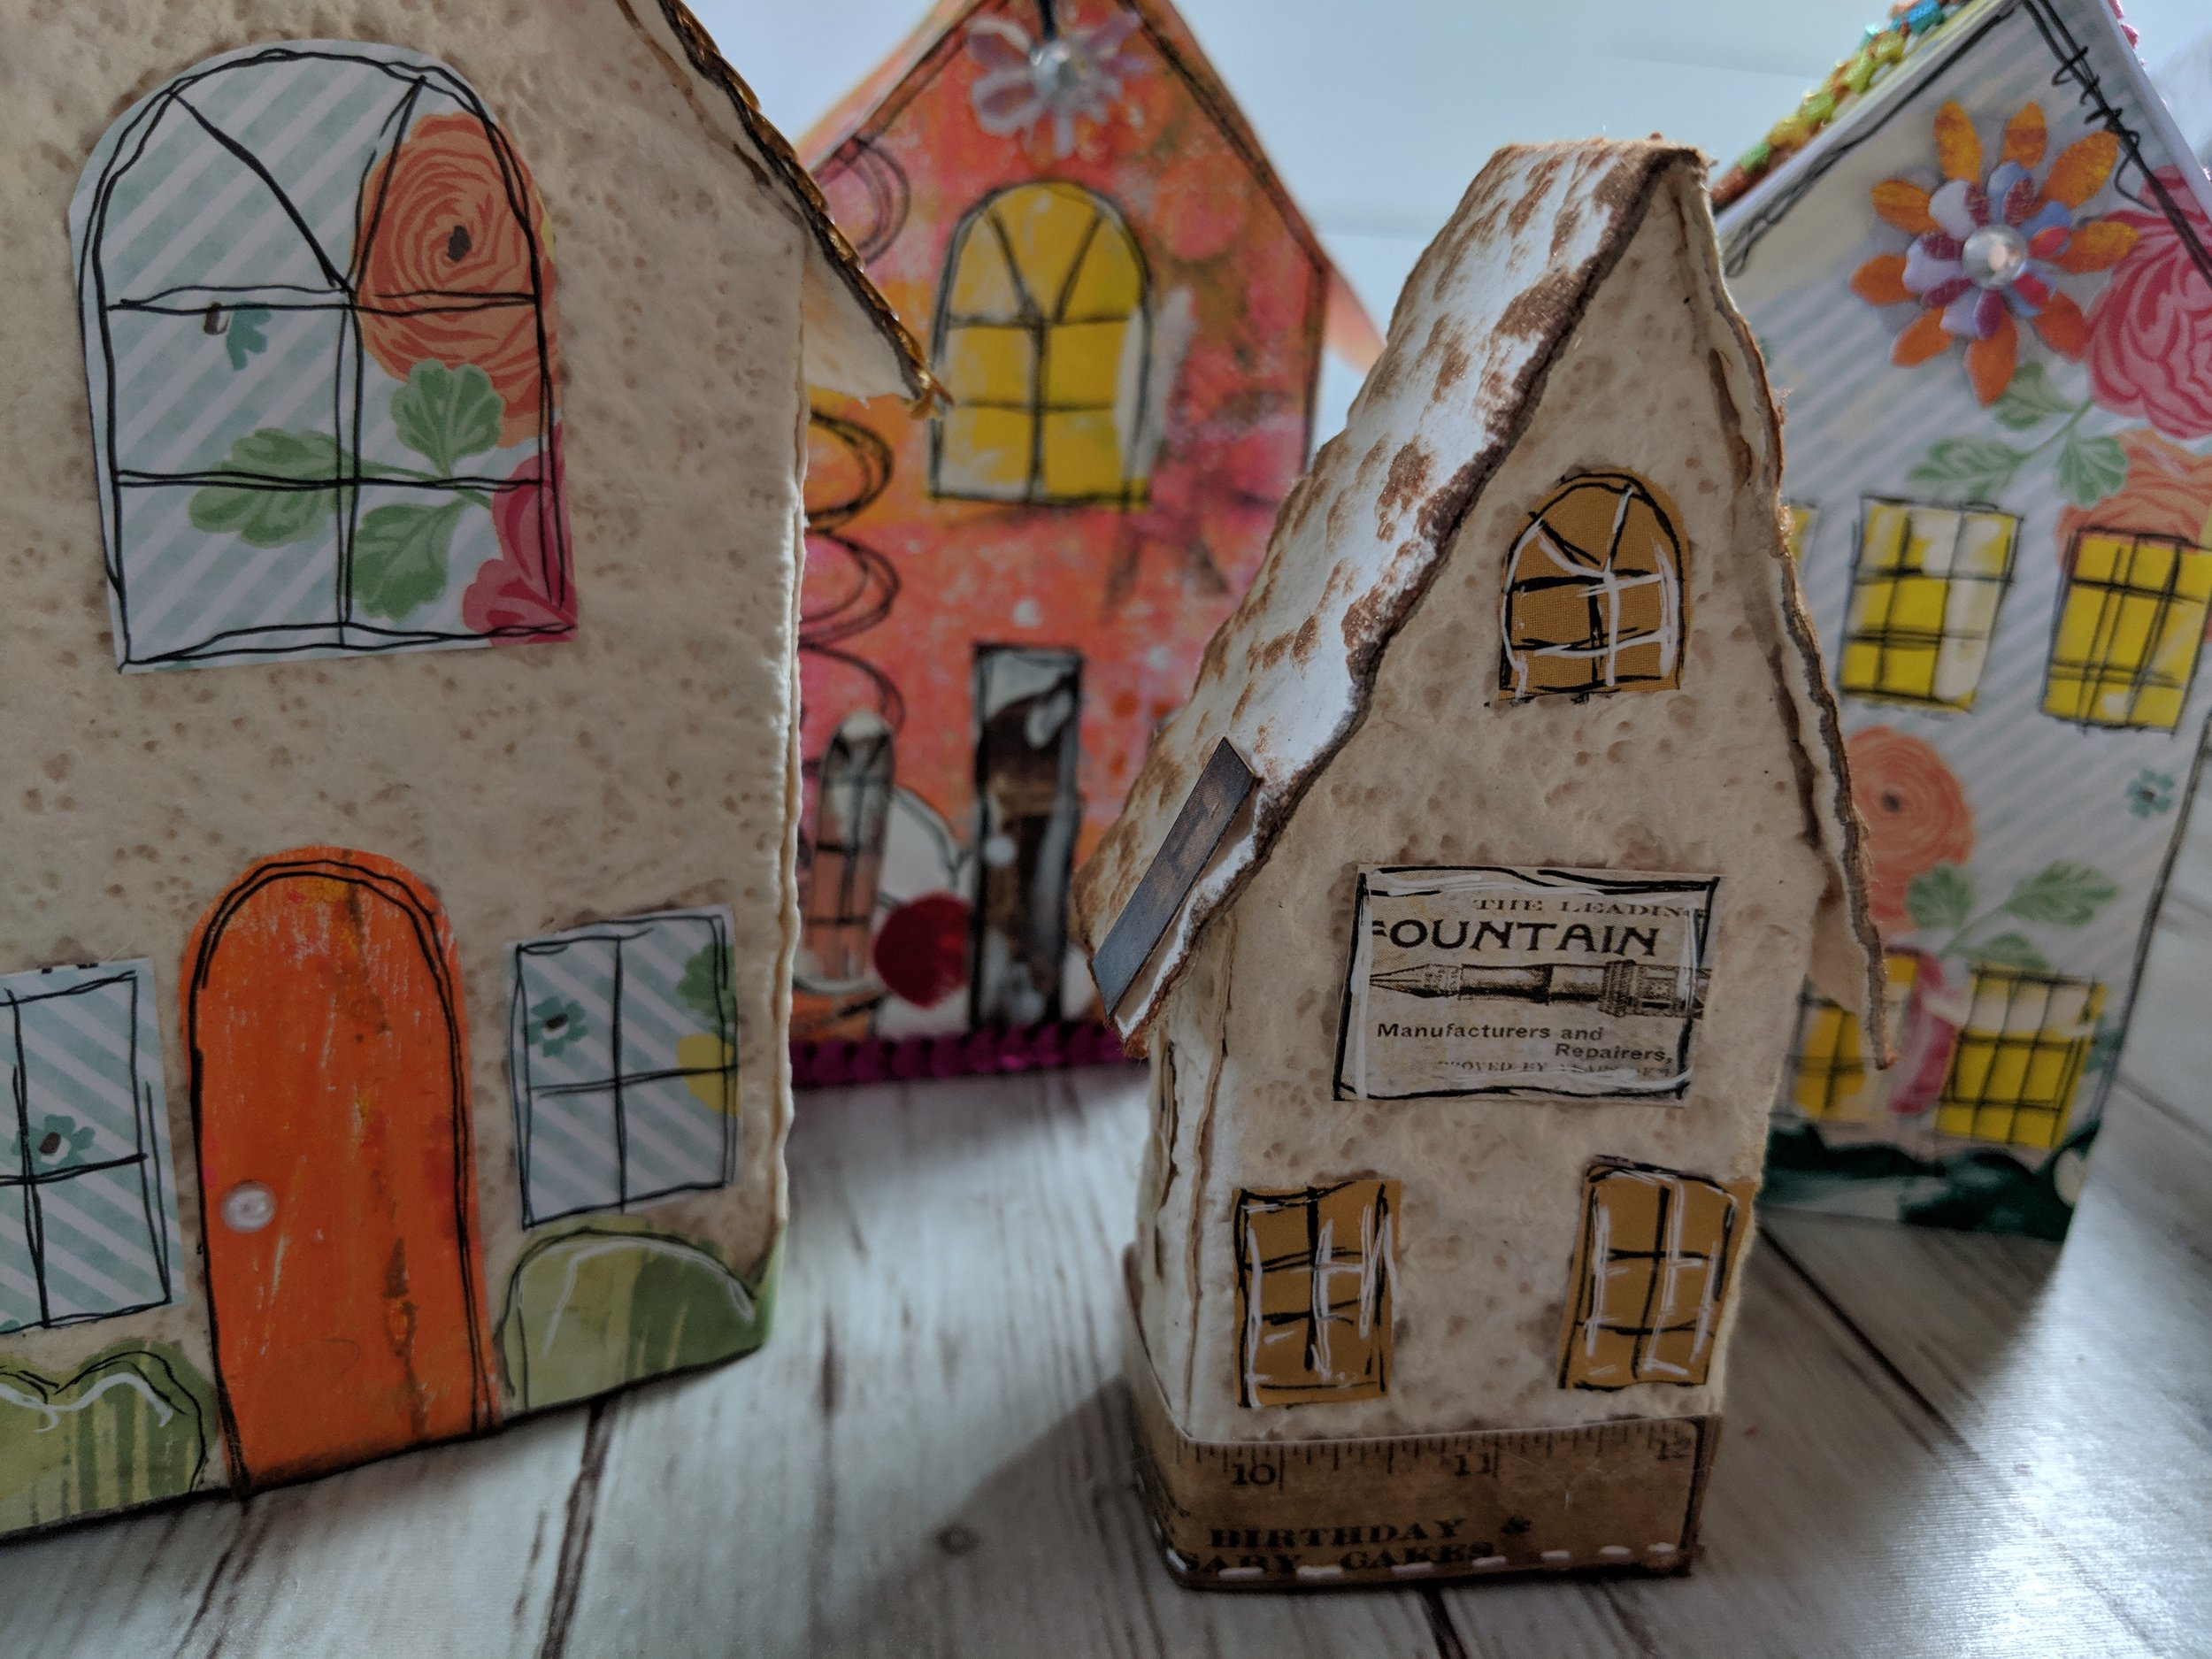 Mixed media whimsical villages are one of my favorite things to create when I'm in my studio.